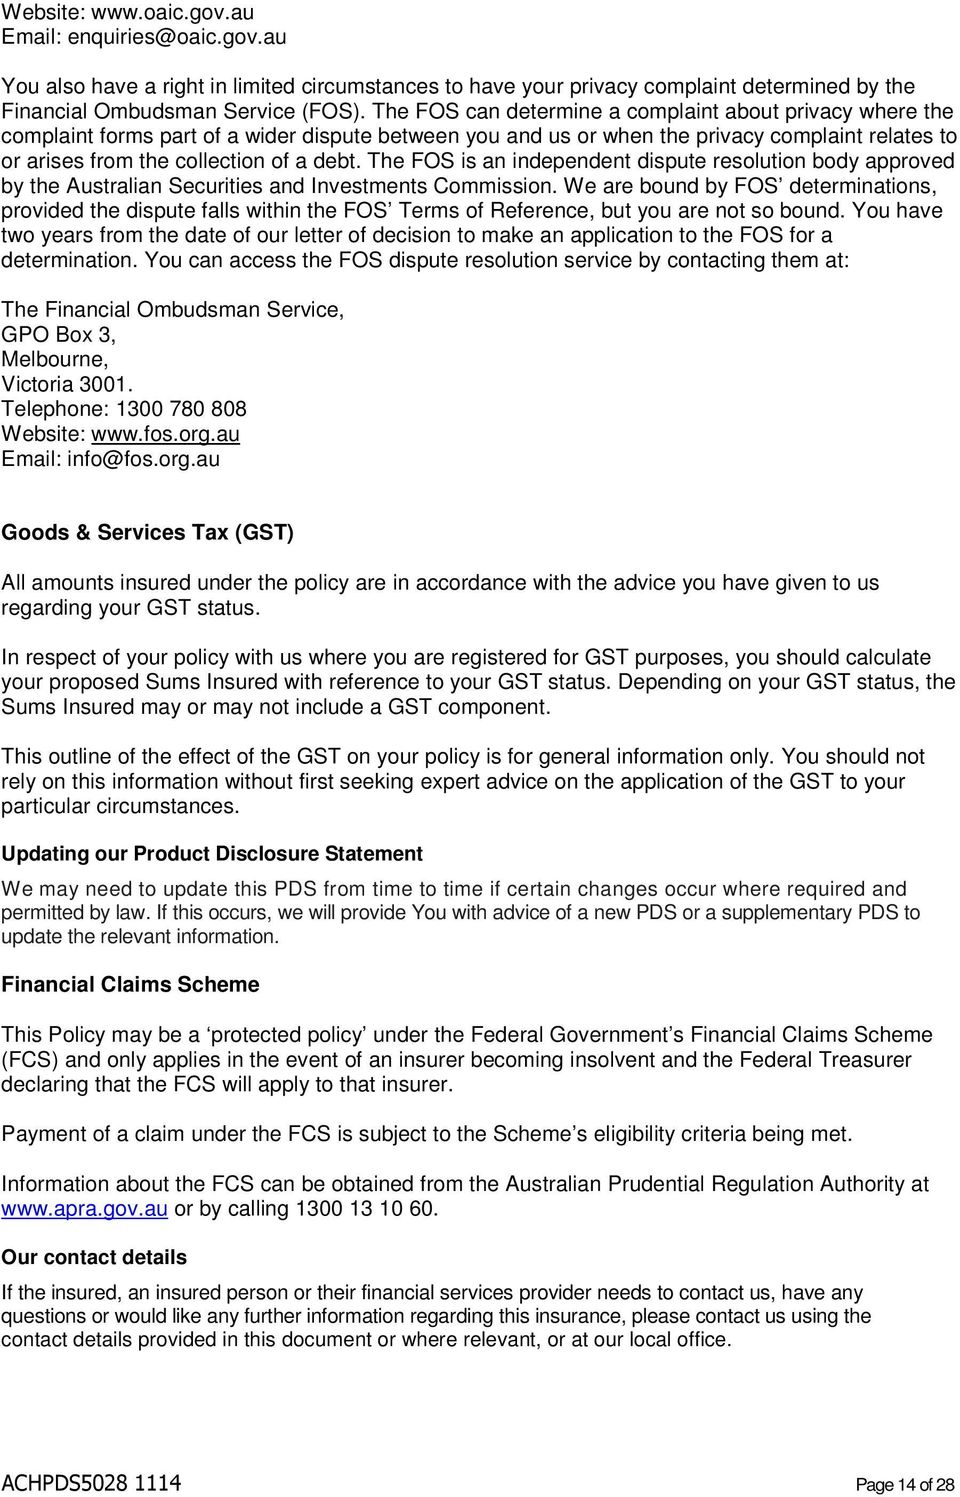 The FOS is an independent dispute resolution body approved by the Australian Securities and Investments Commission.